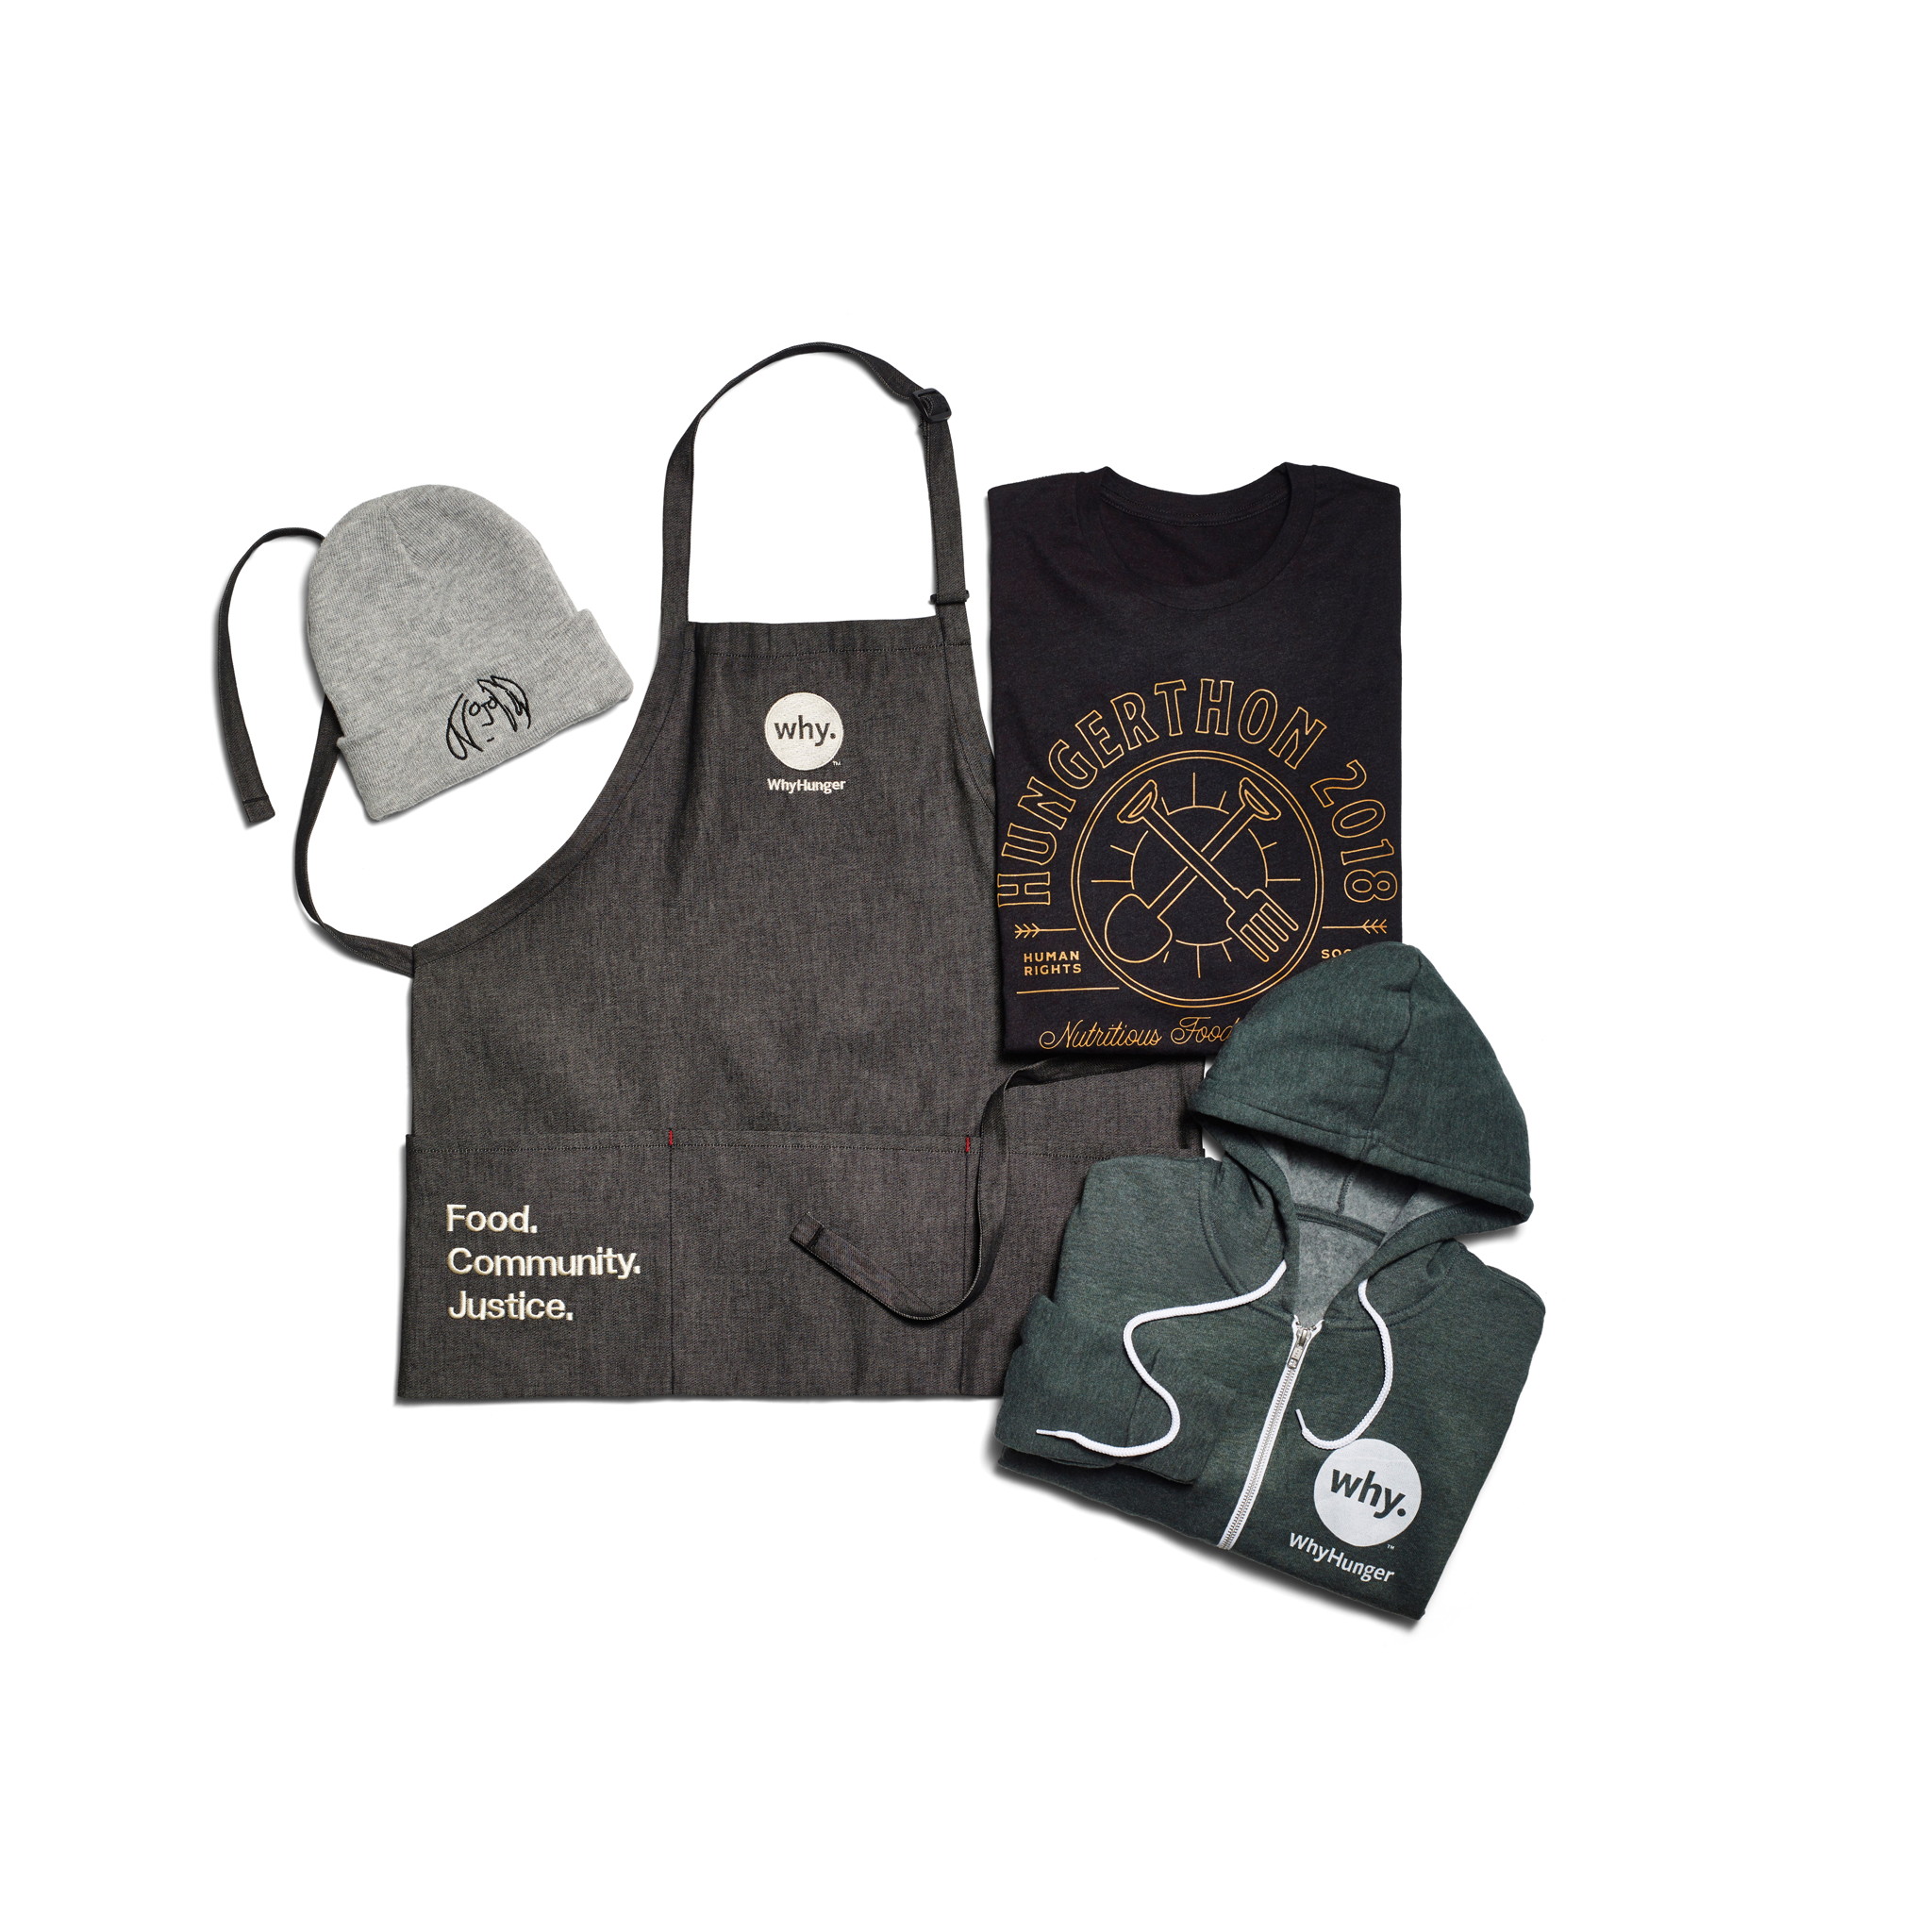 2018 WhyHunger Superfan Combo Pack